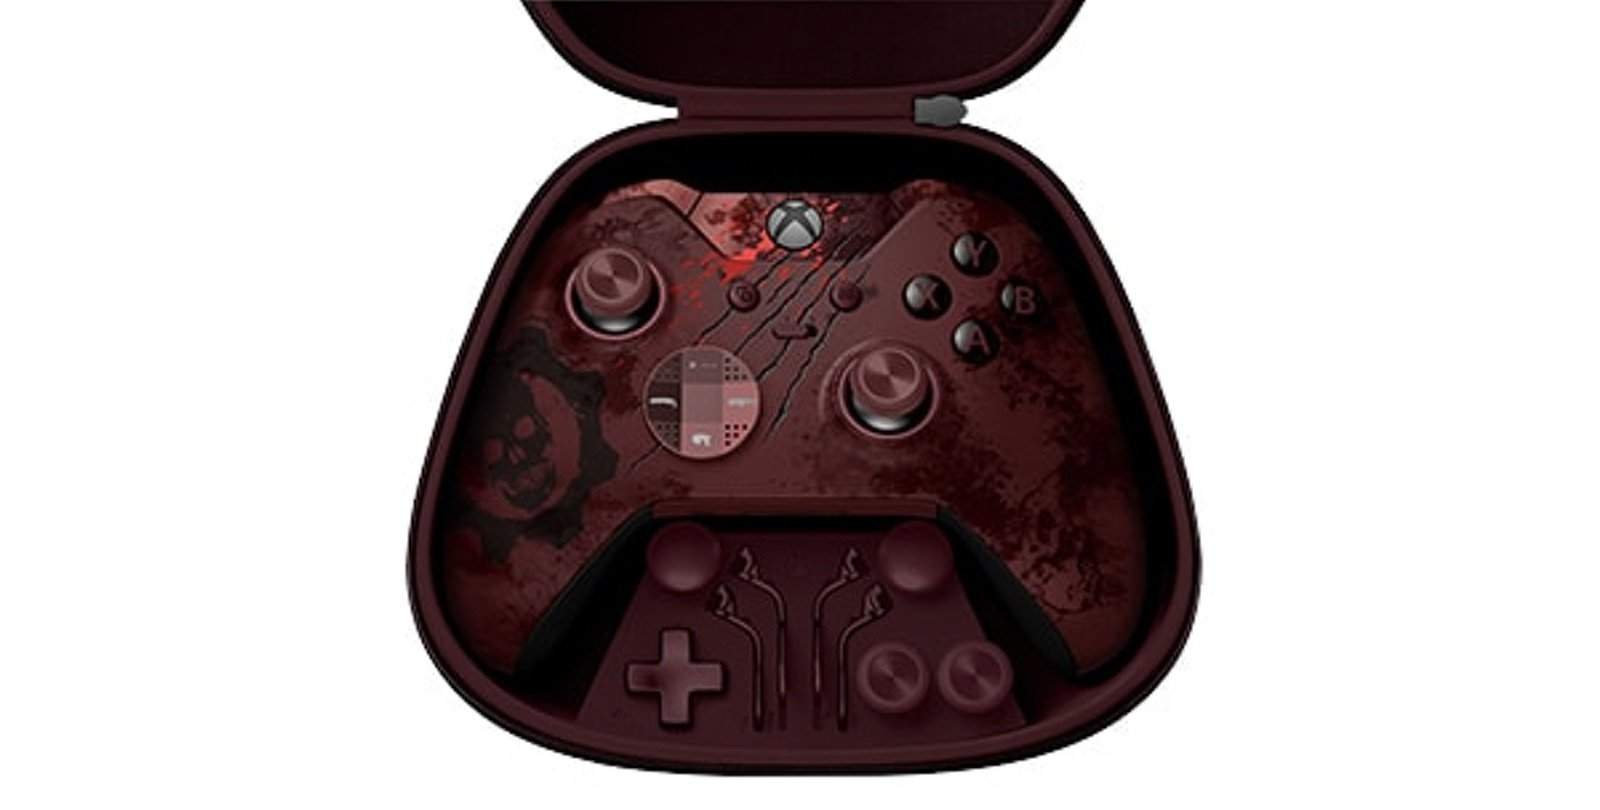 Vamers - FYI - Gaming - Microsoft is Releasing a Gears of War 4 Xbox Elite Controller - 03